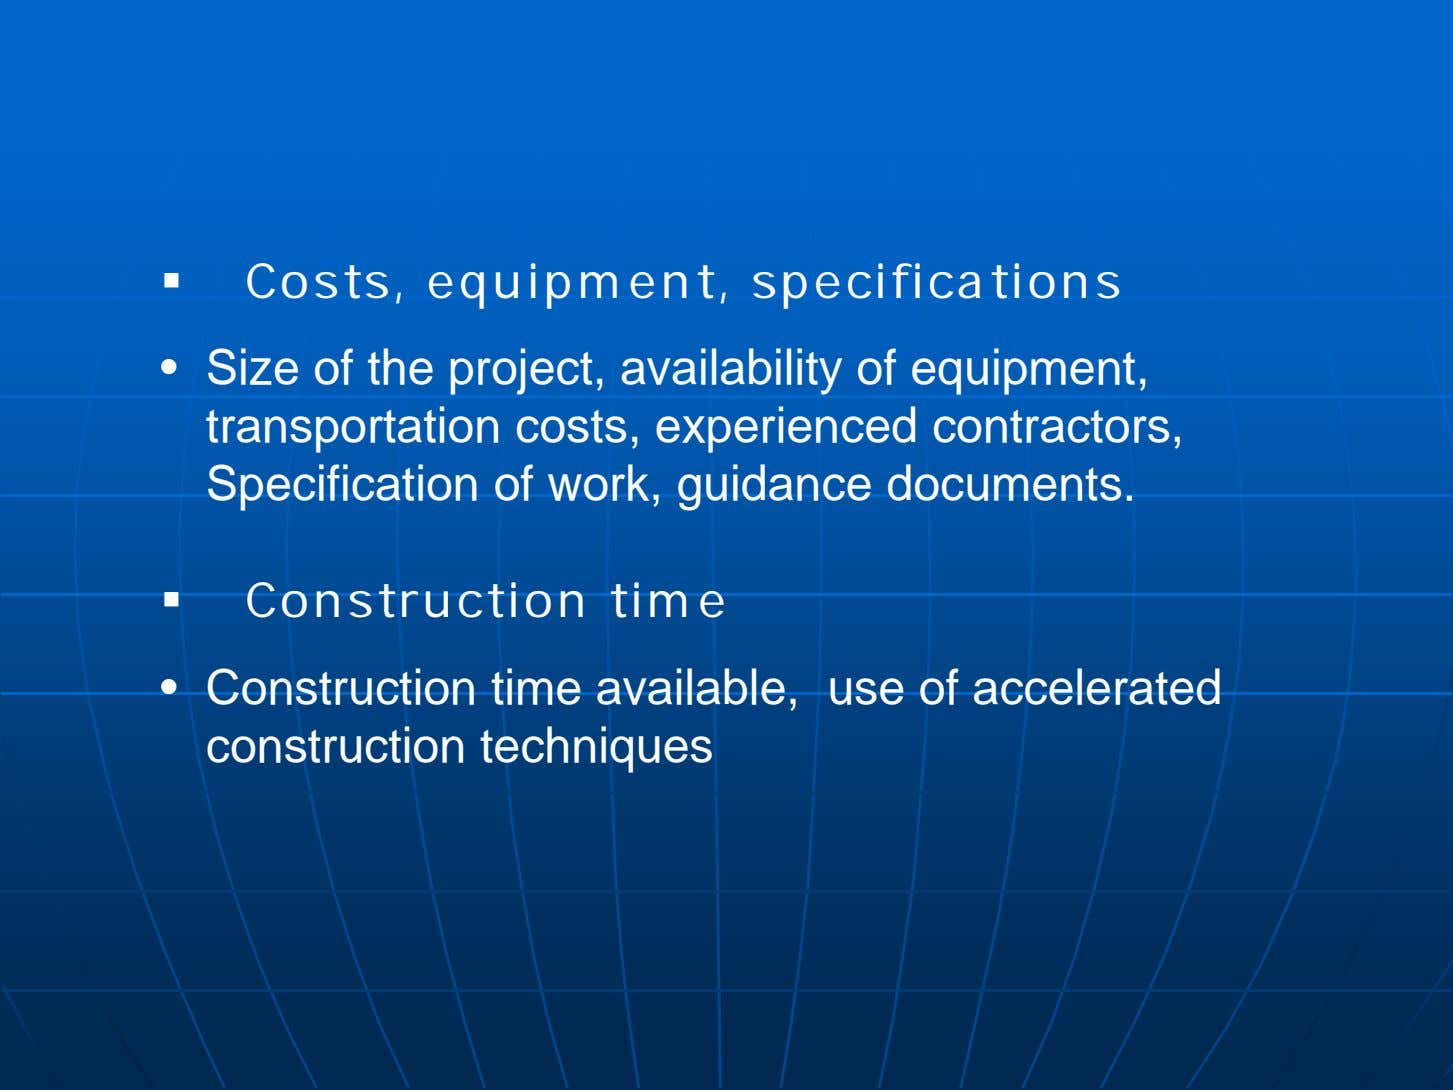  Costs, equipment, specifications • Size of the project, availability of equipment, transportation costs,